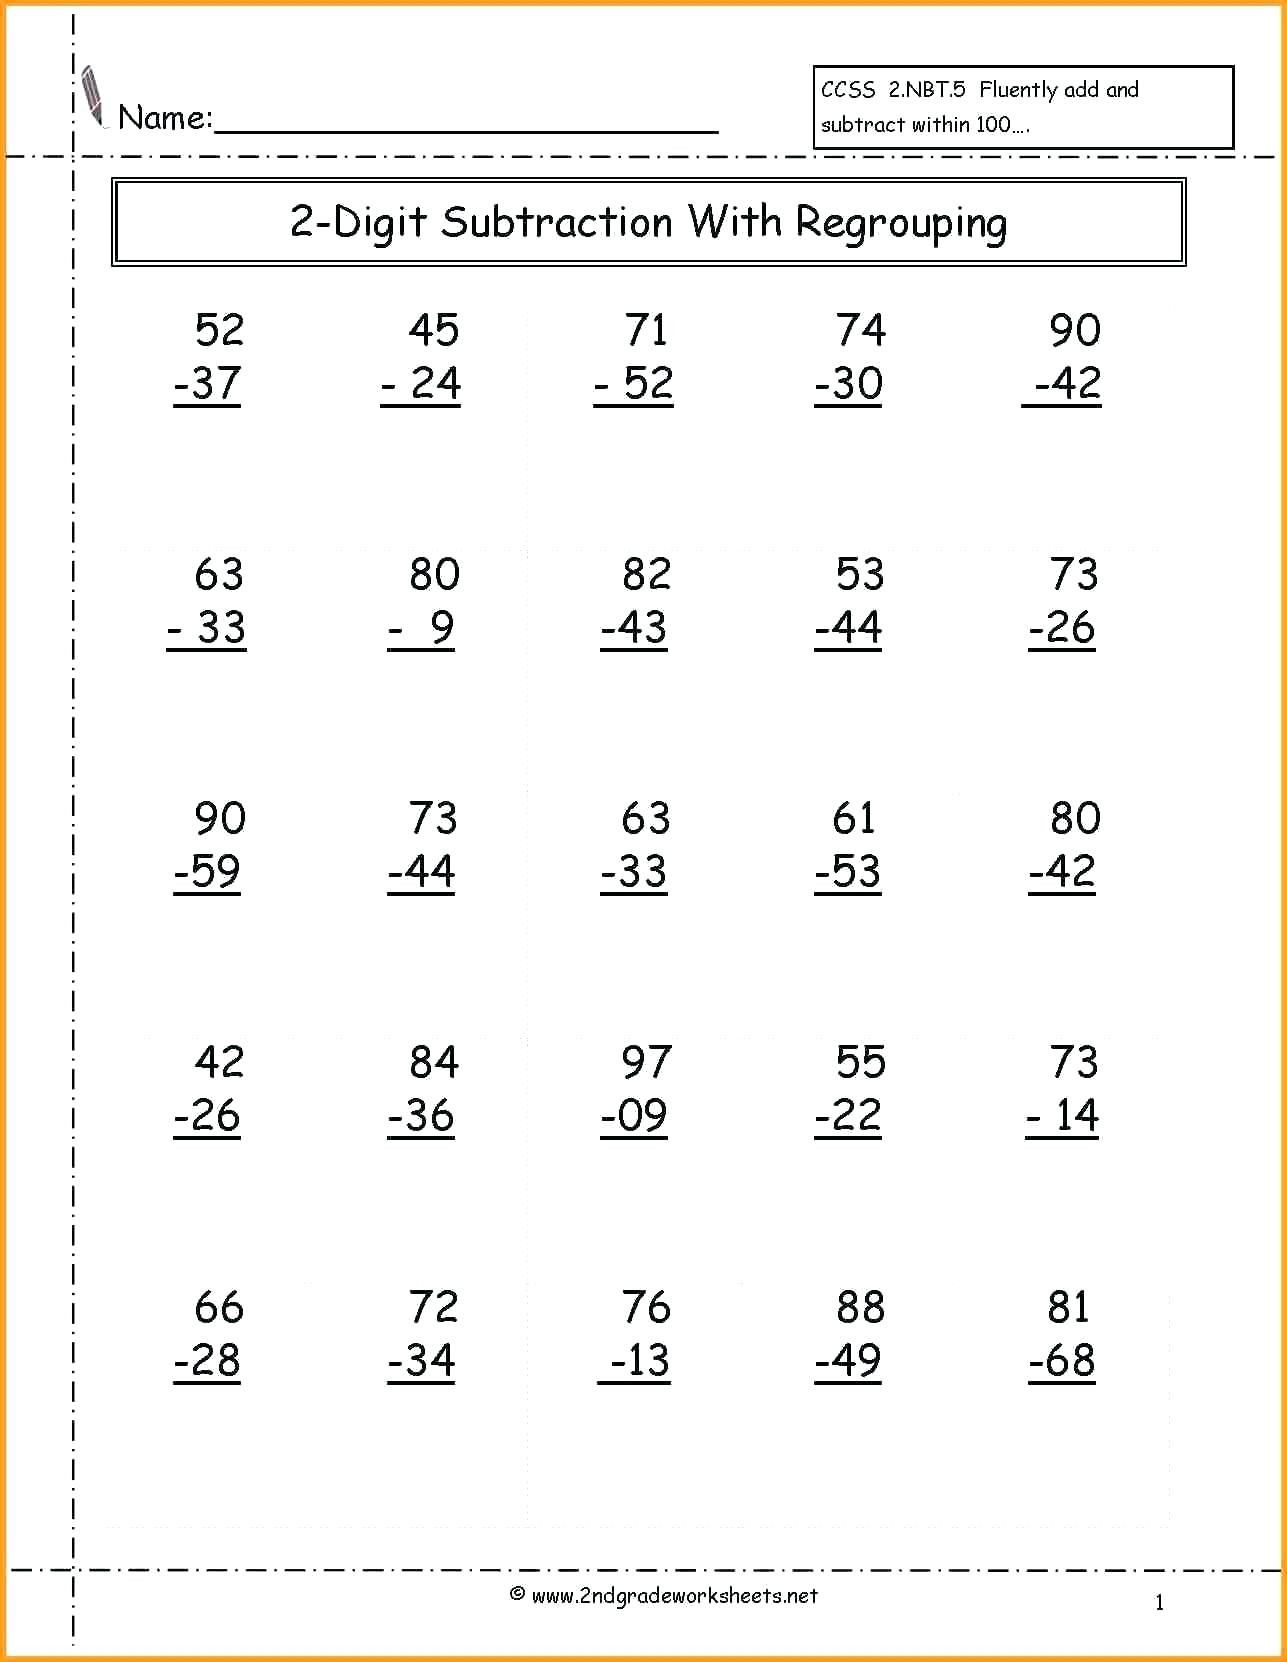 4 Free Math Worksheets Third Grade 3 Addition Adding 2 Digit Plus 1 Digit Secon Math Fact Worksheets Subtraction Worksheets Addition And Subtraction Worksheets